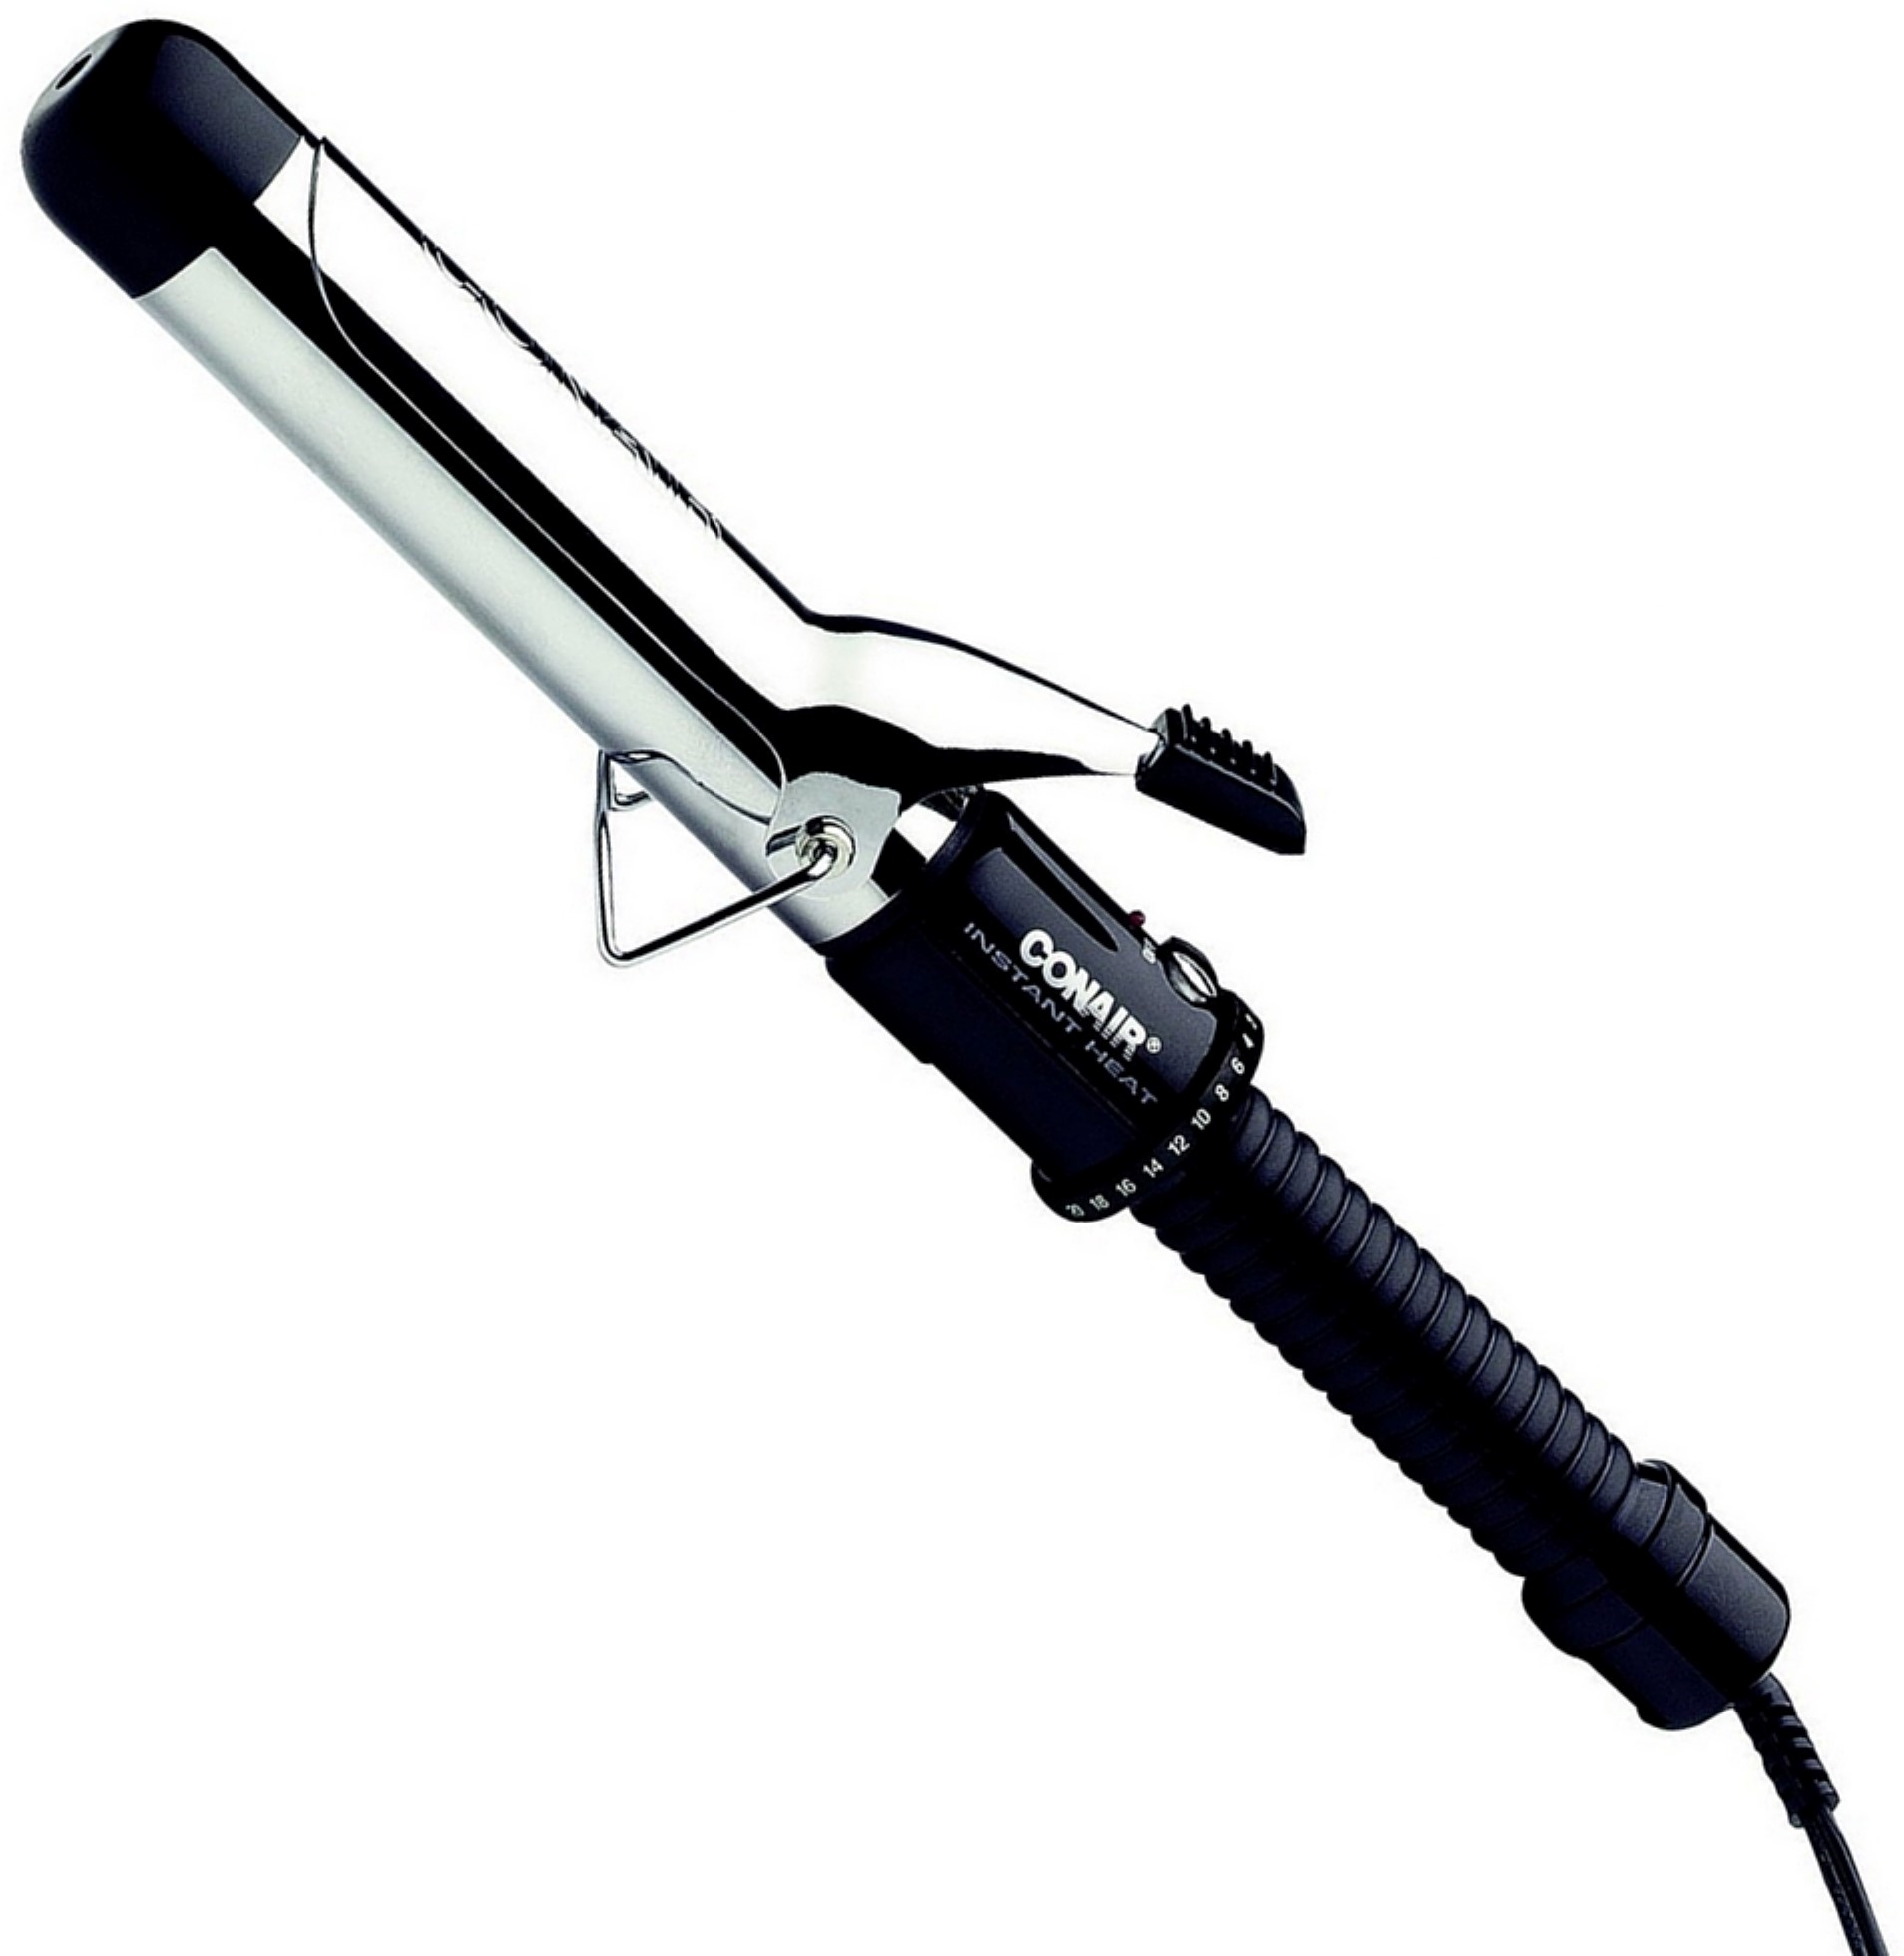 Conair Instant Heat Curling Iron; 1 1/4-inch